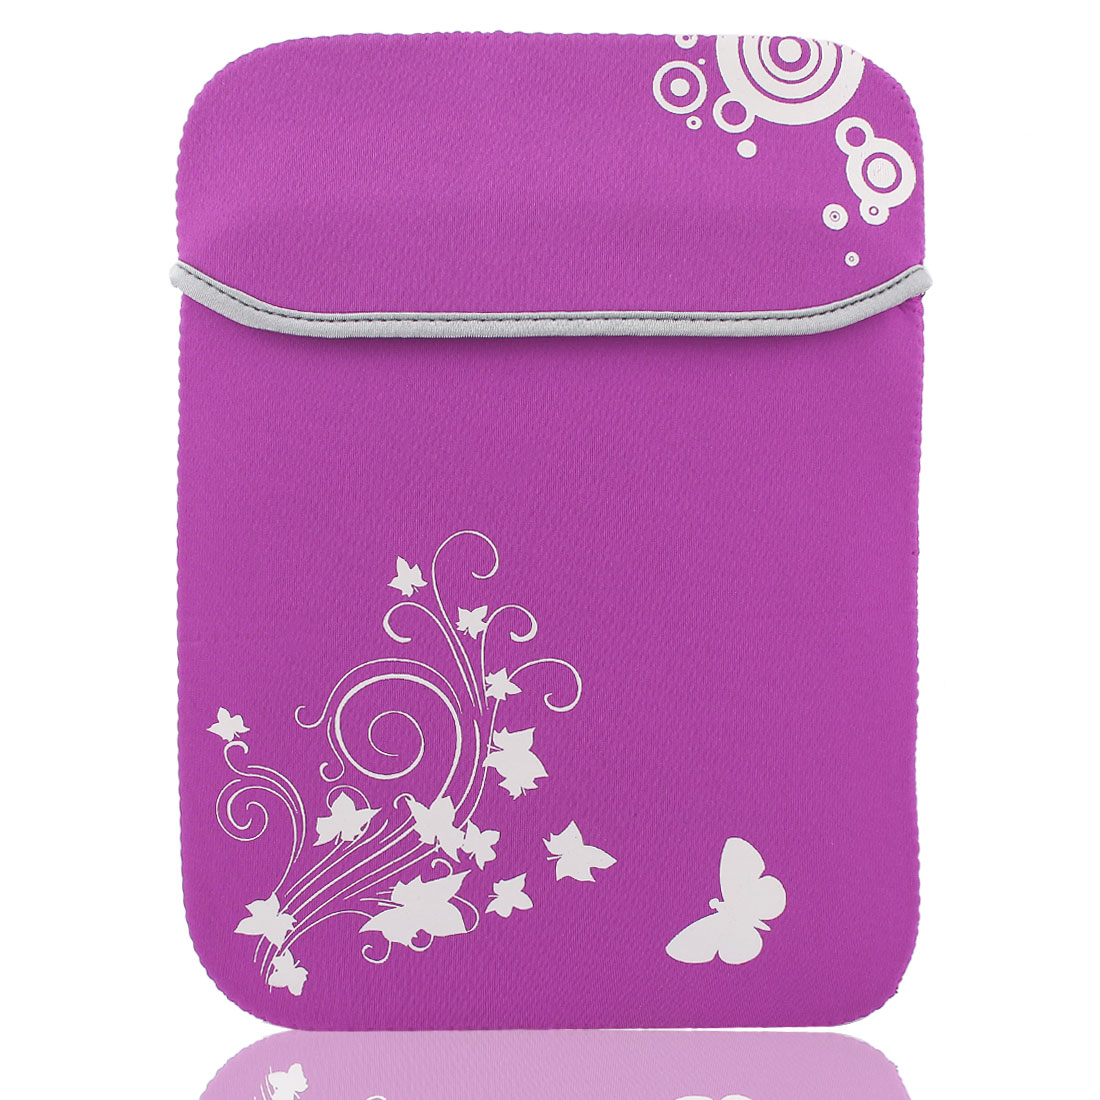 "13"" Flower Butterfly Print Soft PC Laptop Tablet Netbook Sleeve Case Bag Fuchsia"